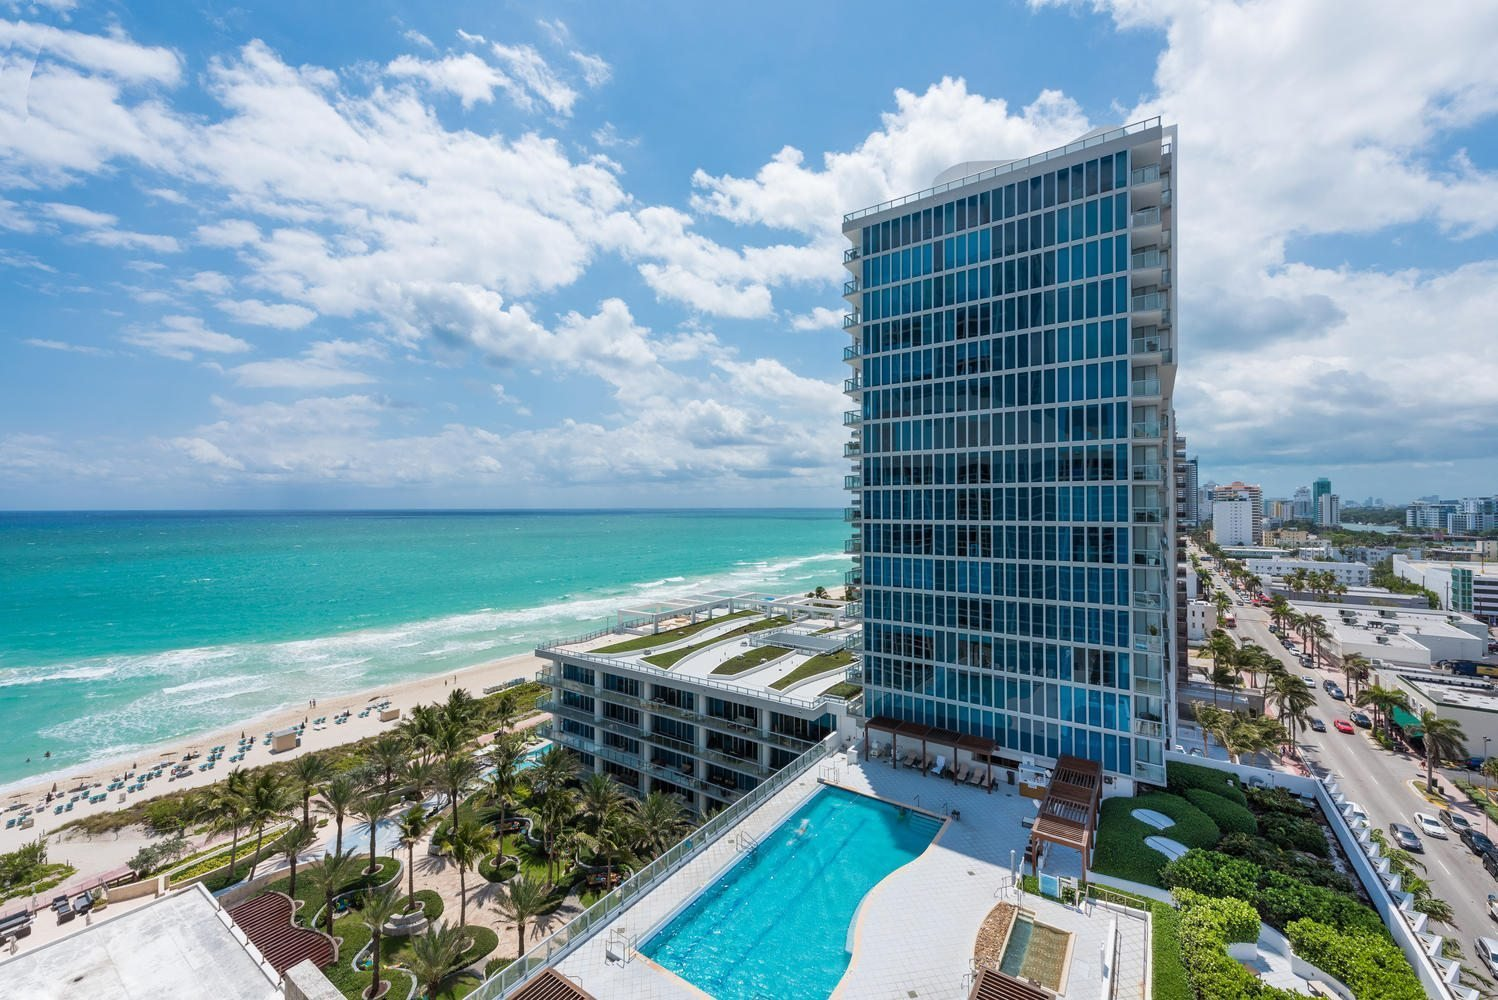 Best The Harbour Miami Beach A New Luxury Condo On The Water With Pictures